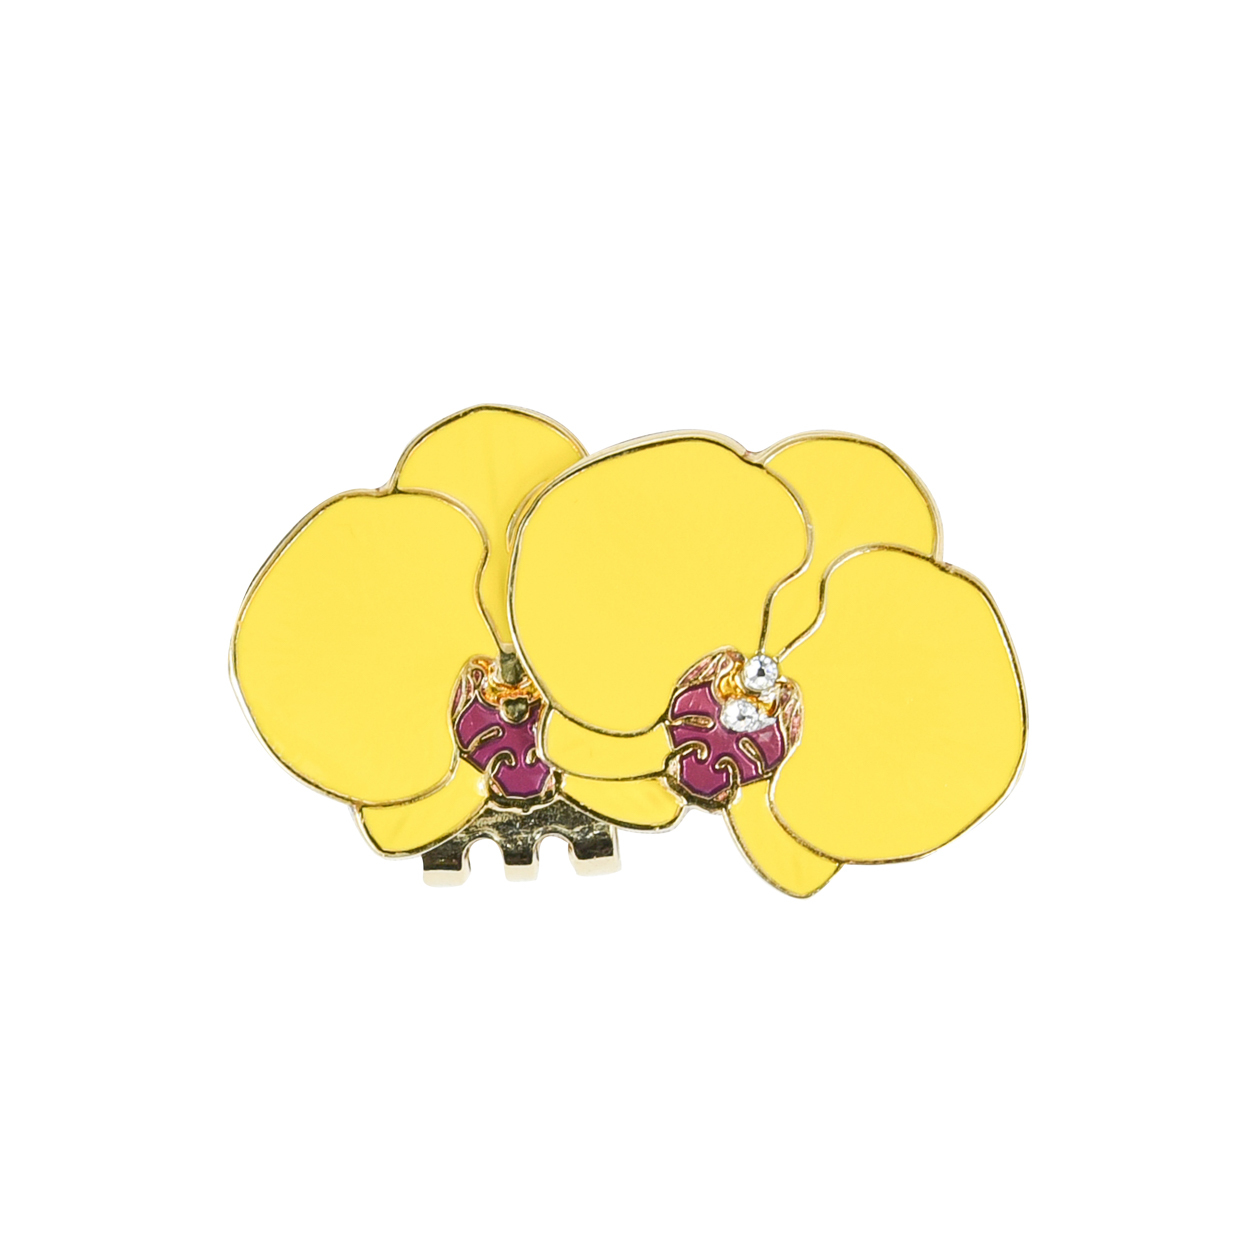 4. Orchid Yellow